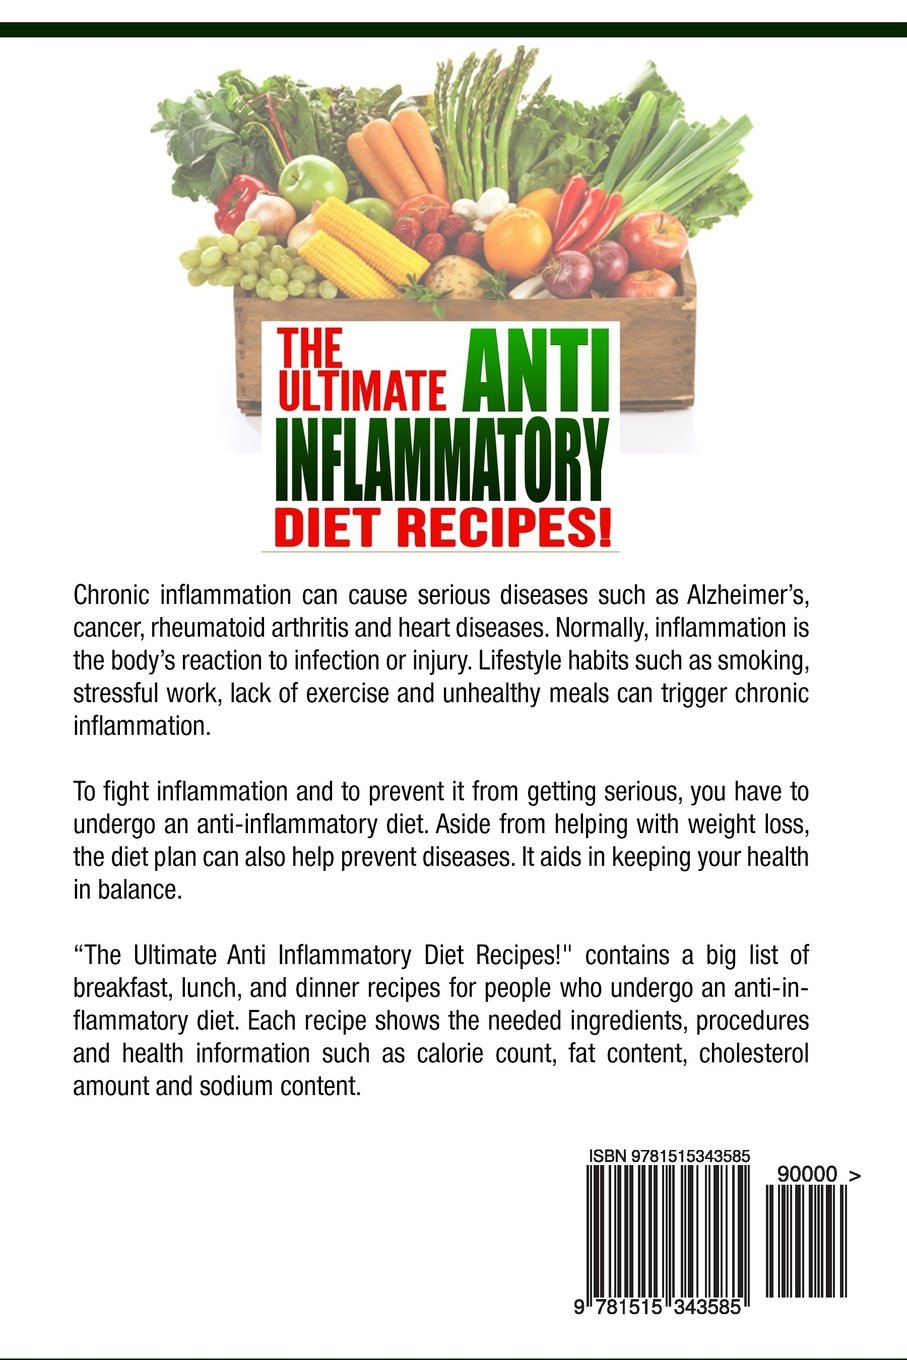 Anti inflammatory diet the ultimate anti inflammatory diet recipes anti inflammatory diet the ultimate anti inflammatory diet recipes lose weight now volume 4 life changing diets 9781515343585 amazon books forumfinder Images